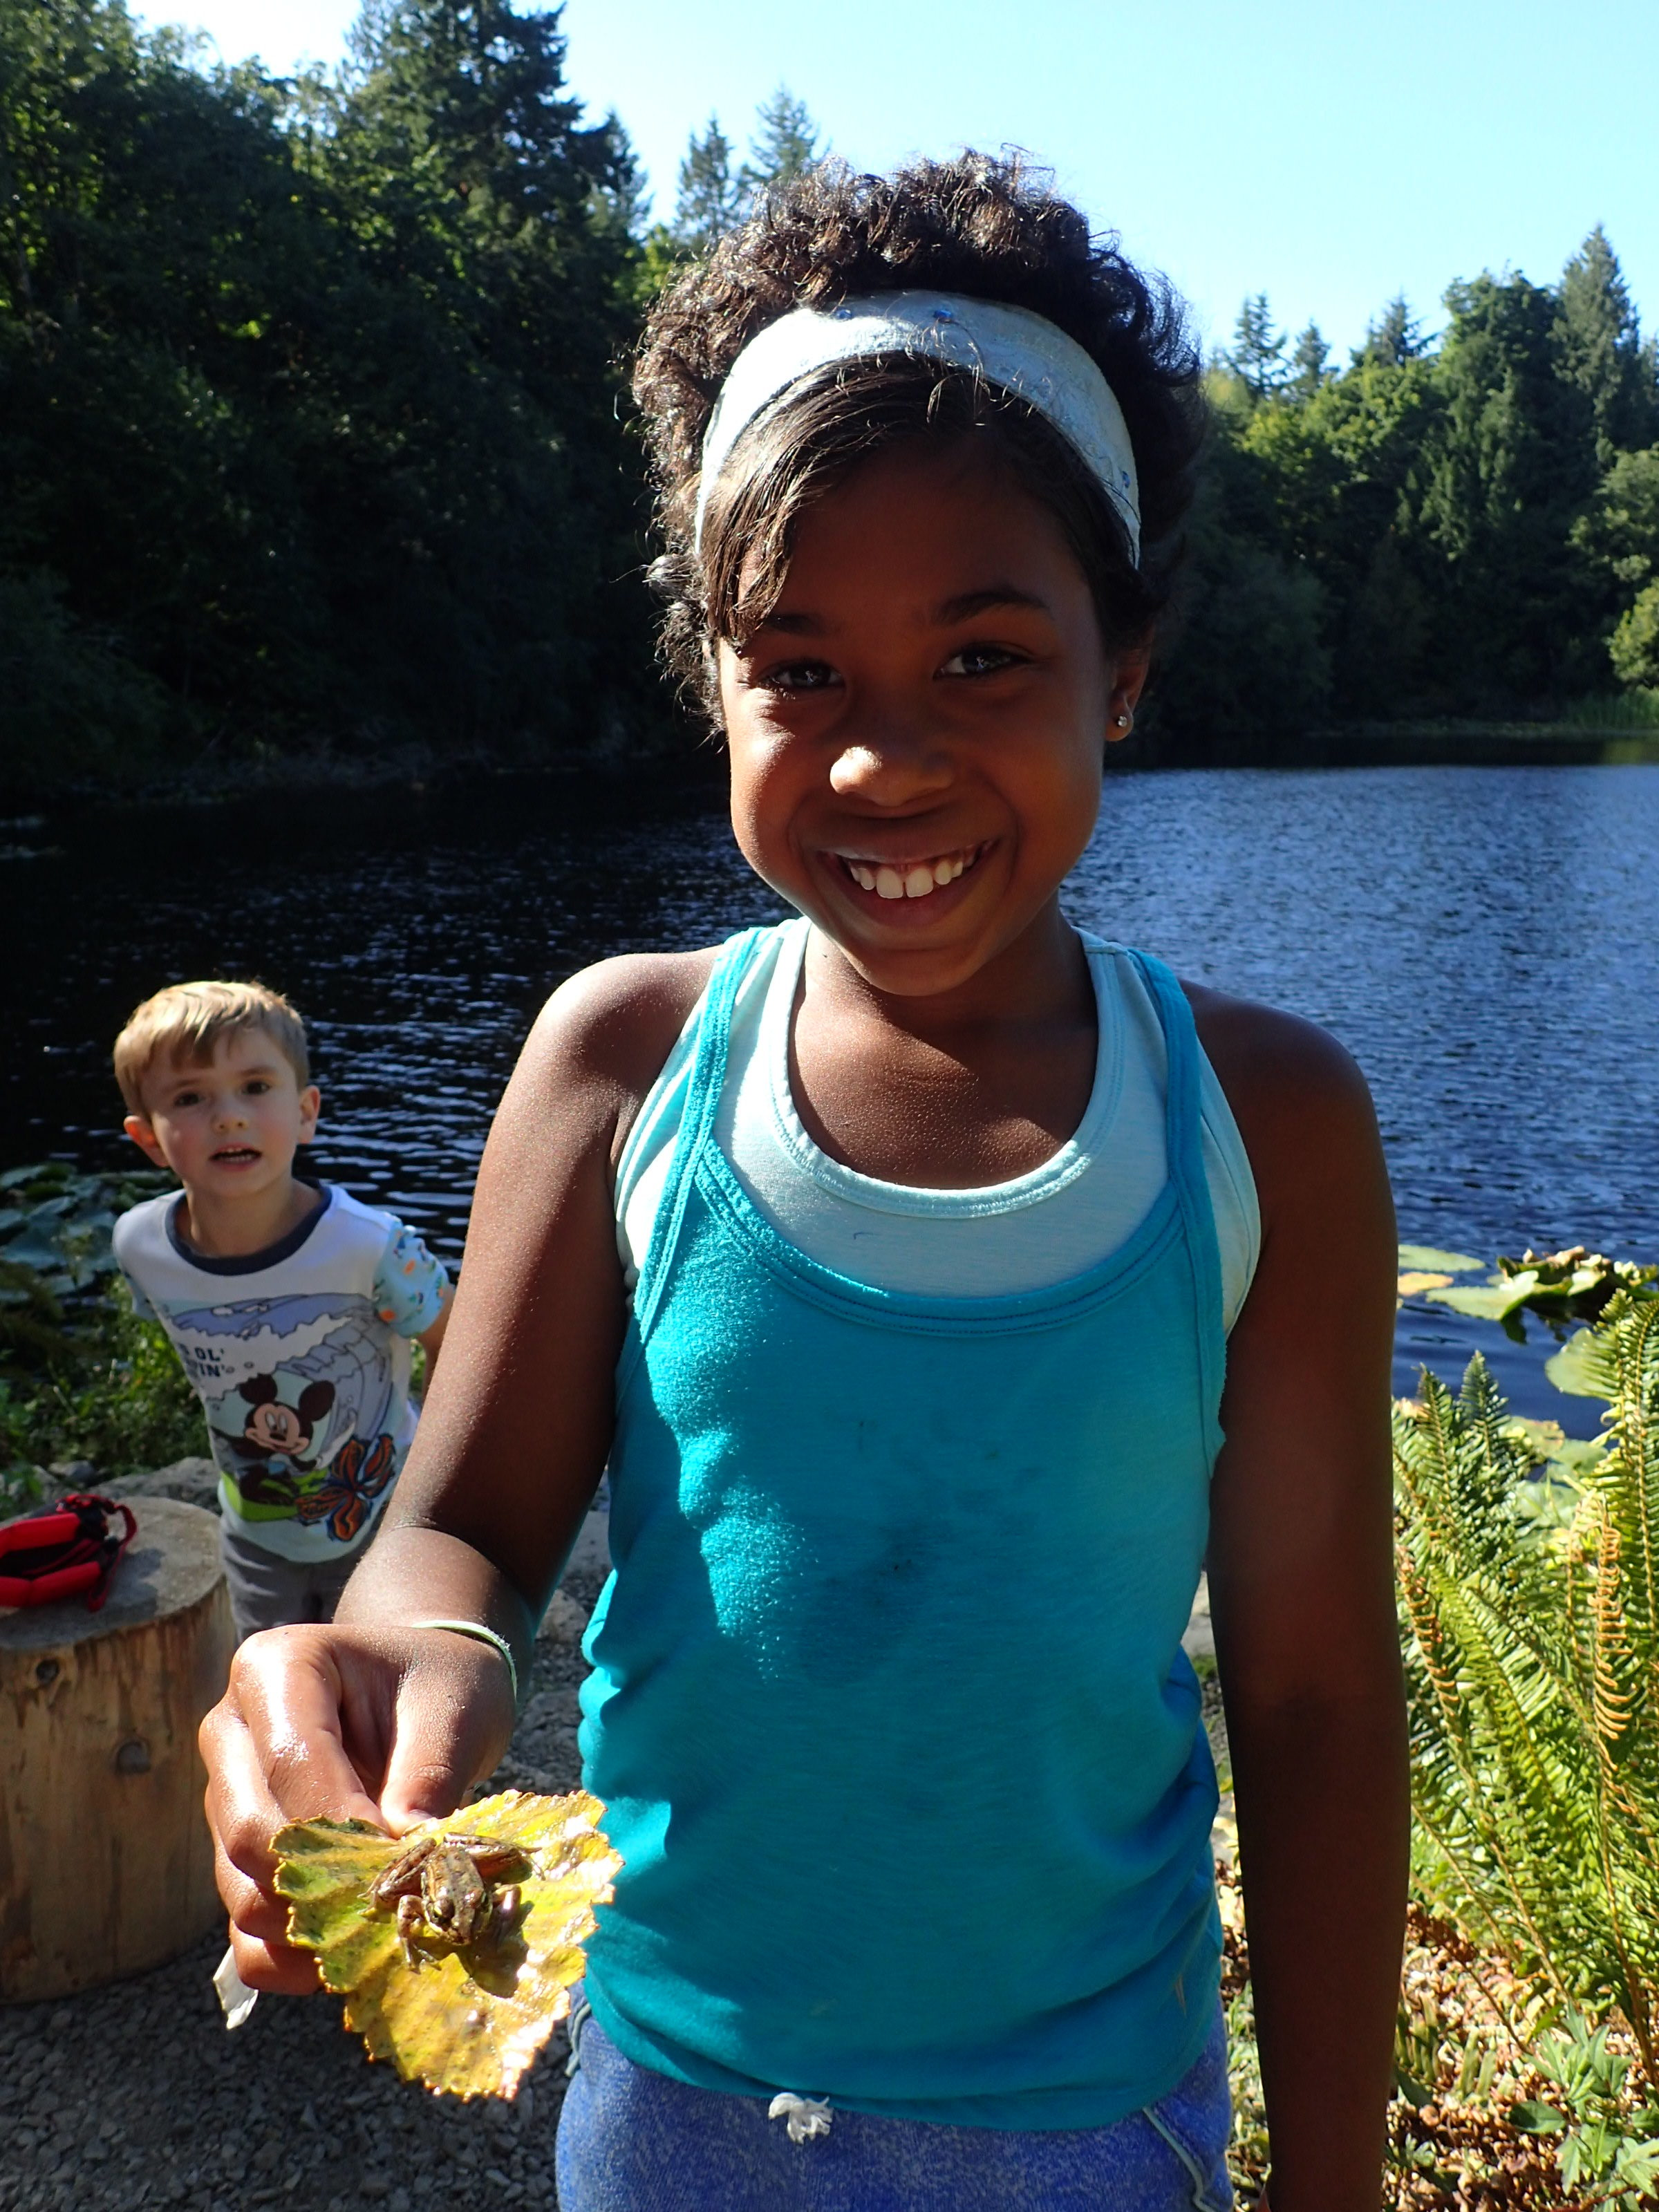 [Image description: a photo of a child holding a frog in their hand at Mac's Pond on IslandWood's Bainbridge Island campus.]